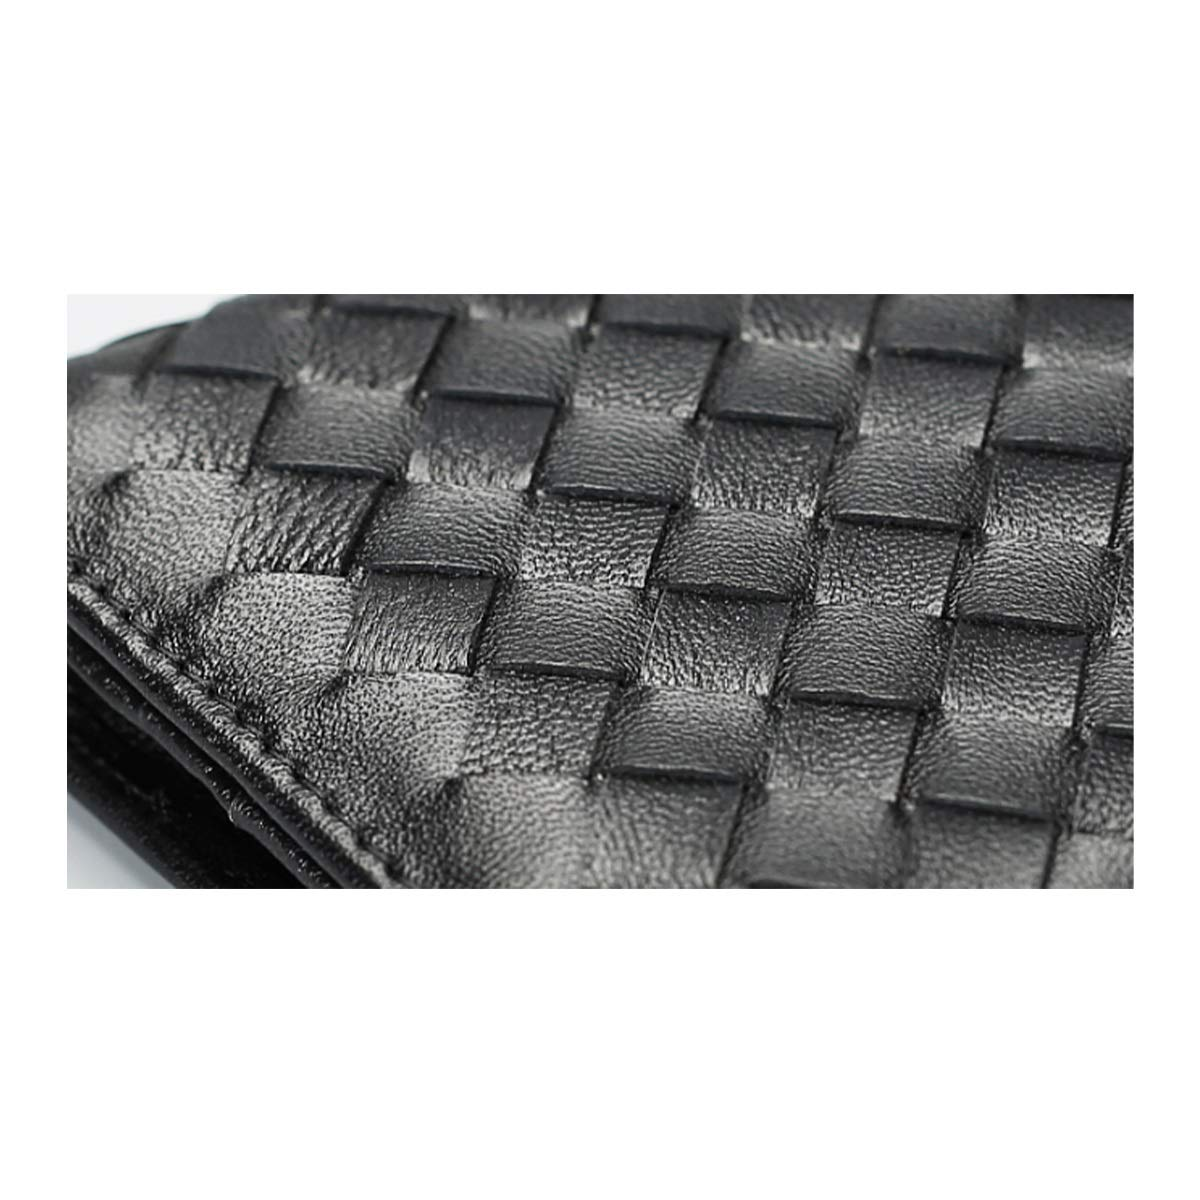 Xingganglengyin European and American Leather Woven Mini Wallet Female Small Short Small Small Fresh Folding Buckle Two Fold Vertical Ultra-Thin Color : Black